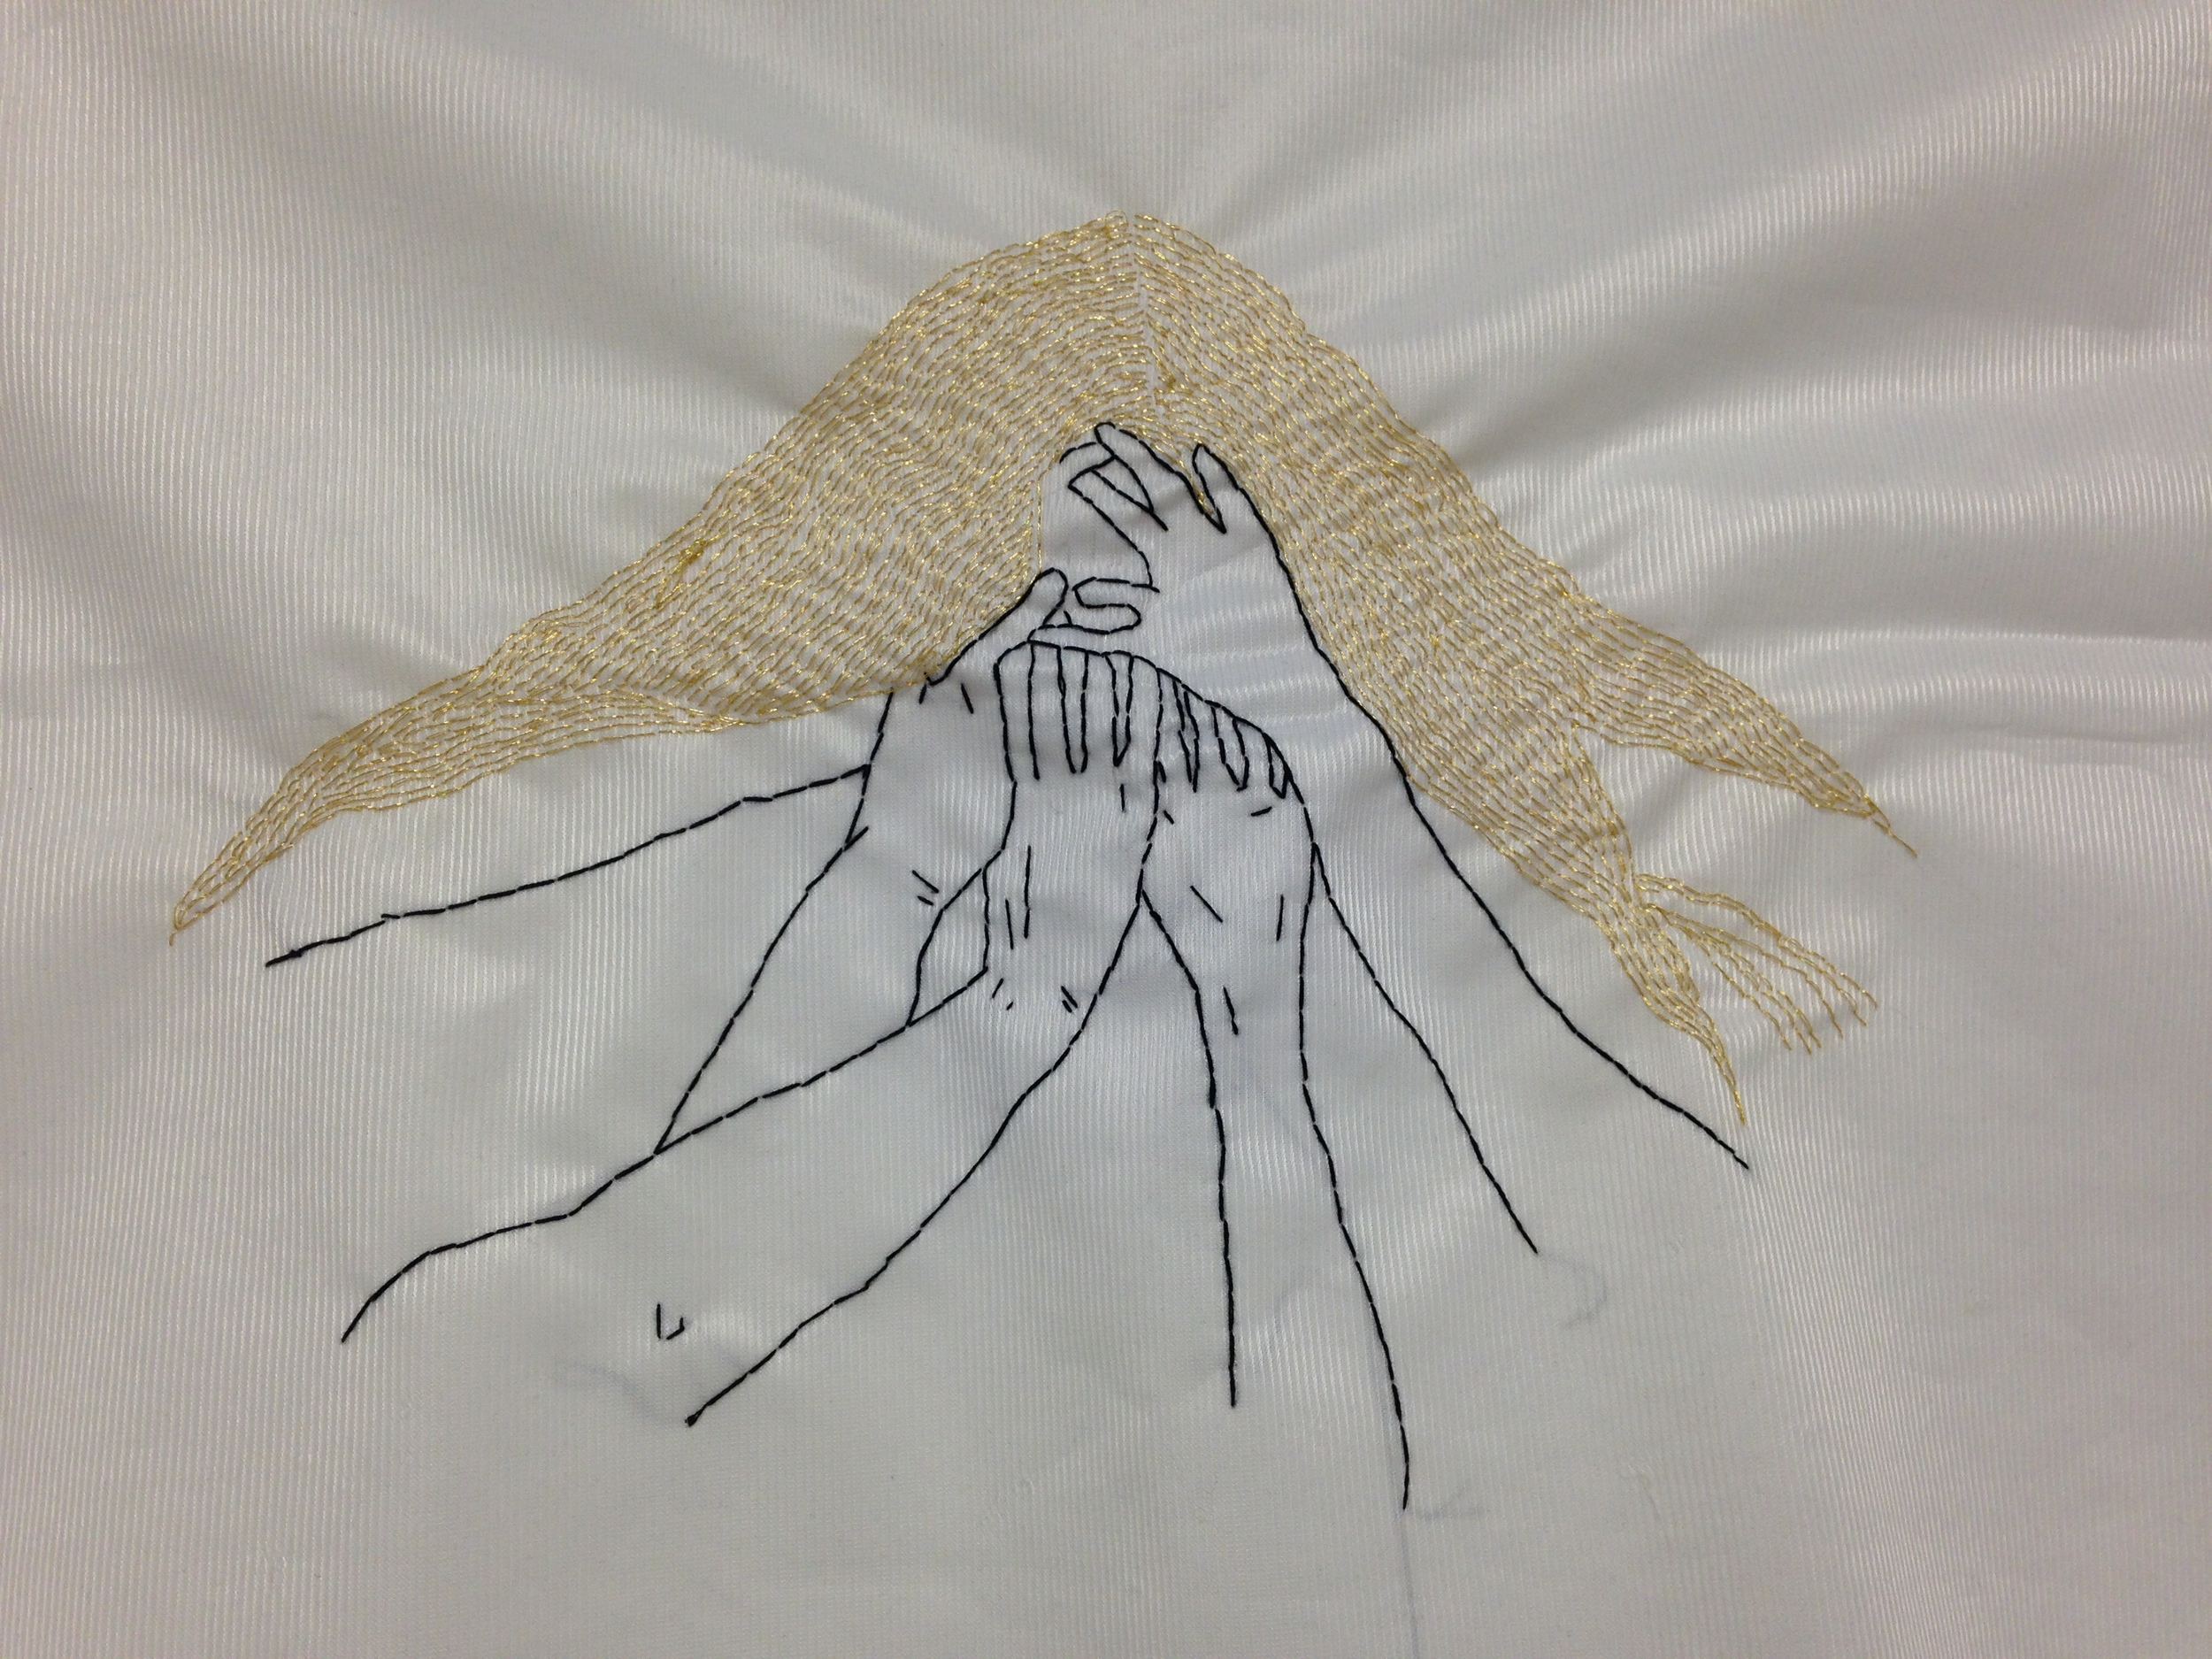 Hands | Hand sewn on Fabric| 30x60cm